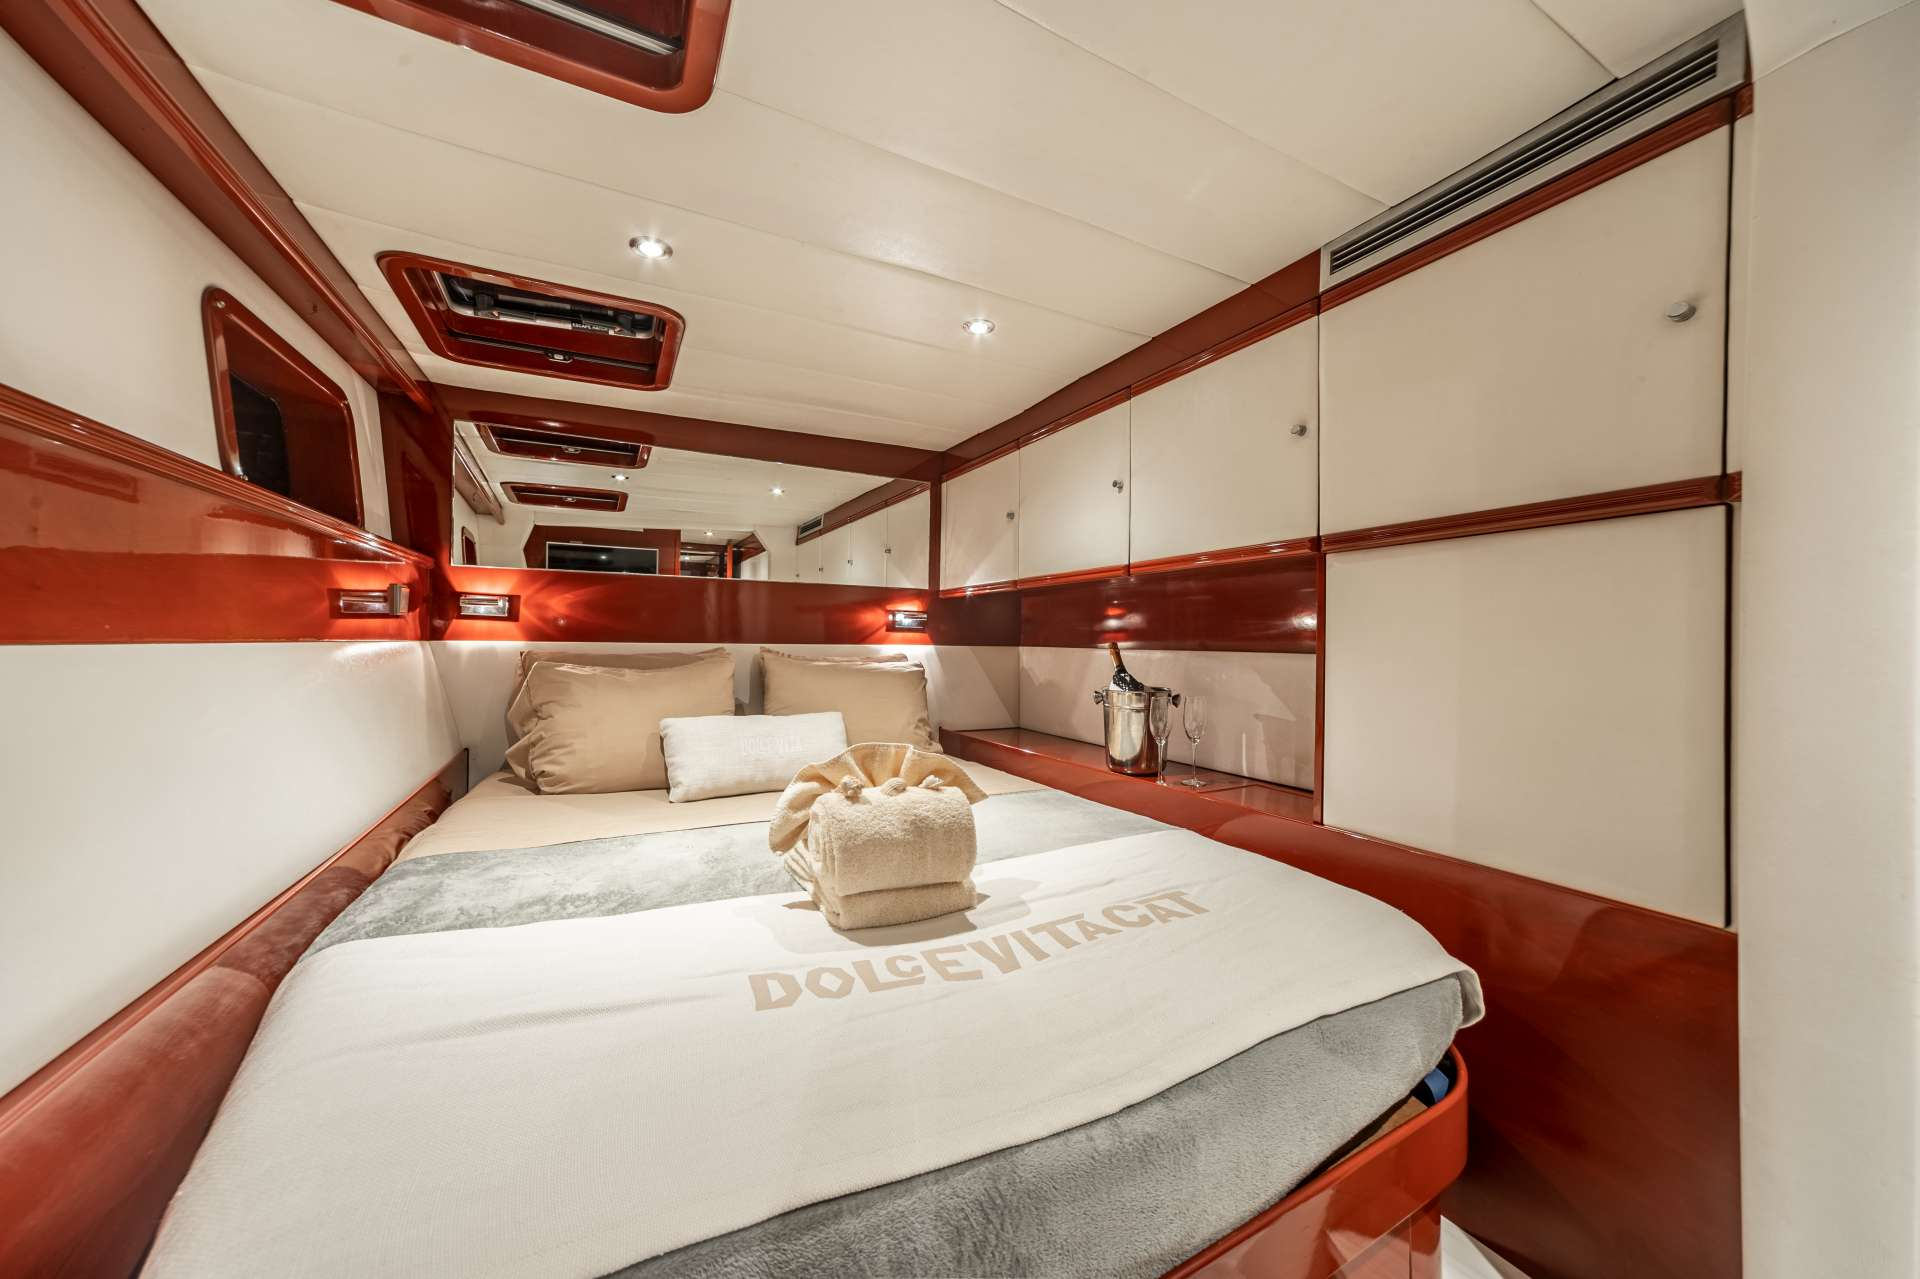 Dolcevitacat Yacht Vacation